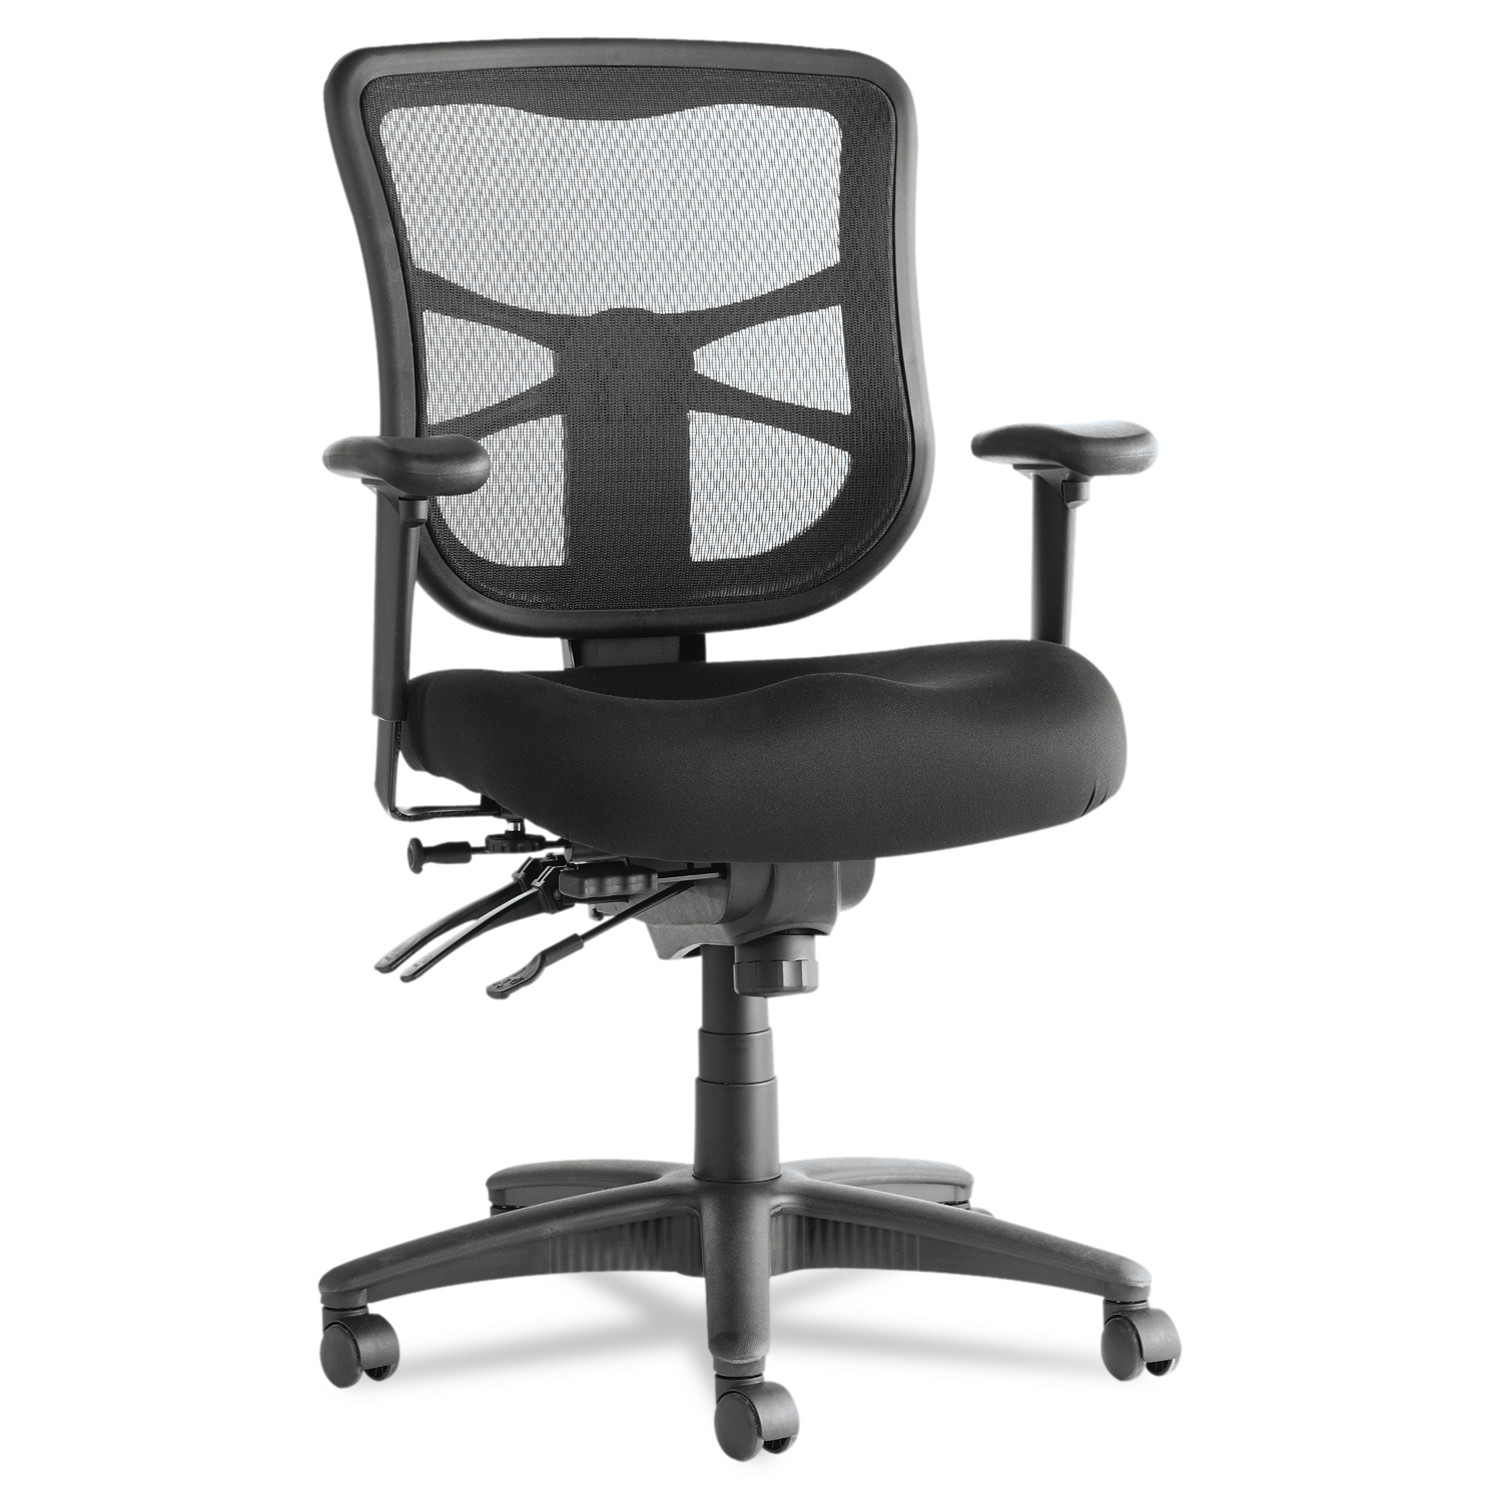 Alera Office Chairs Alera Elusion Series Mesh Mid Back Multifunction Office Chair Black